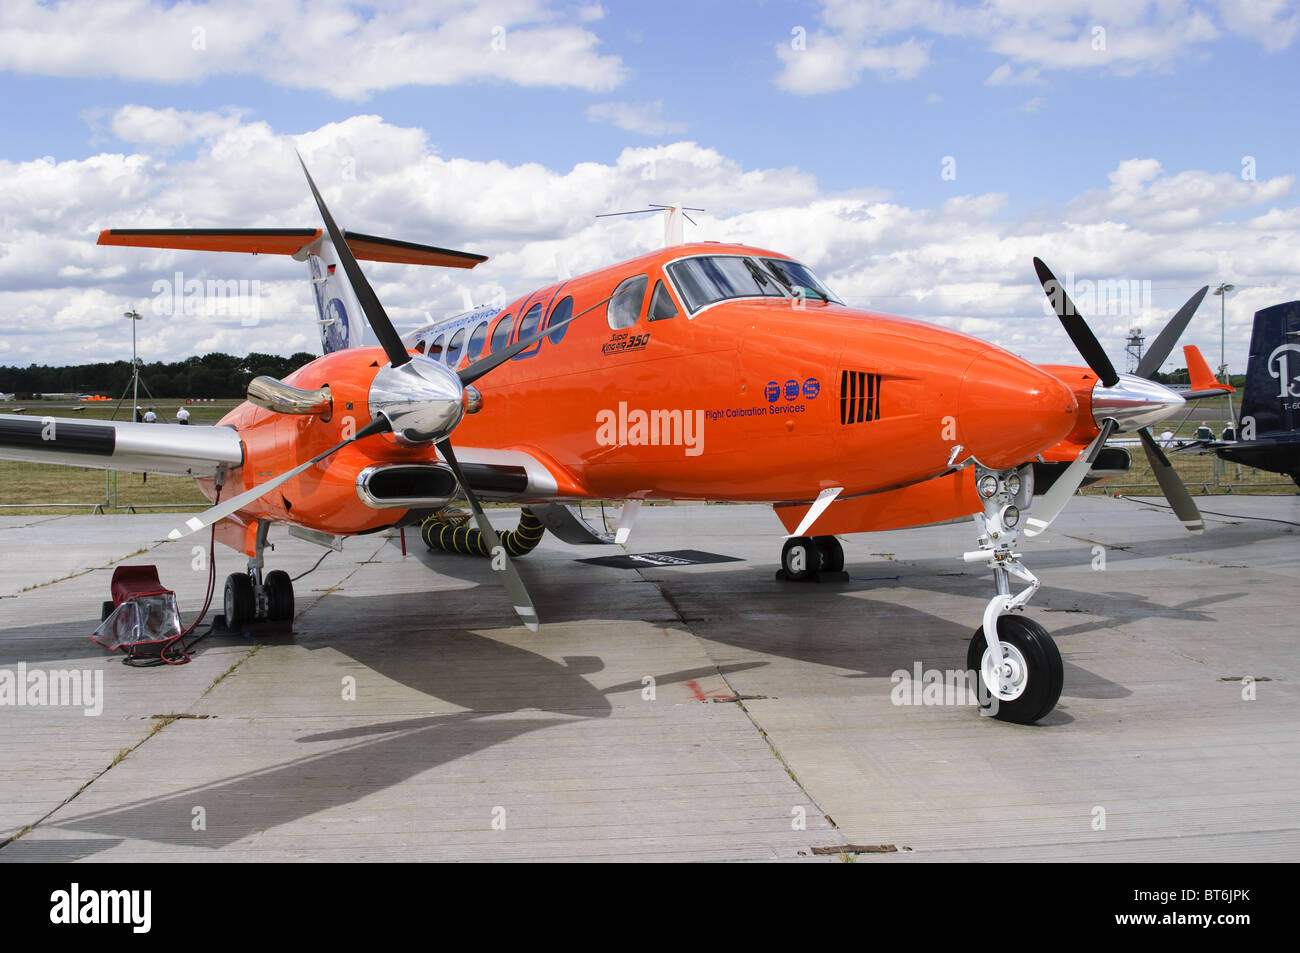 Hawker Beechcraft 350 King Air (B300) operated by Flight Calibration Service on static display at Farnborough Airshow - Stock Image